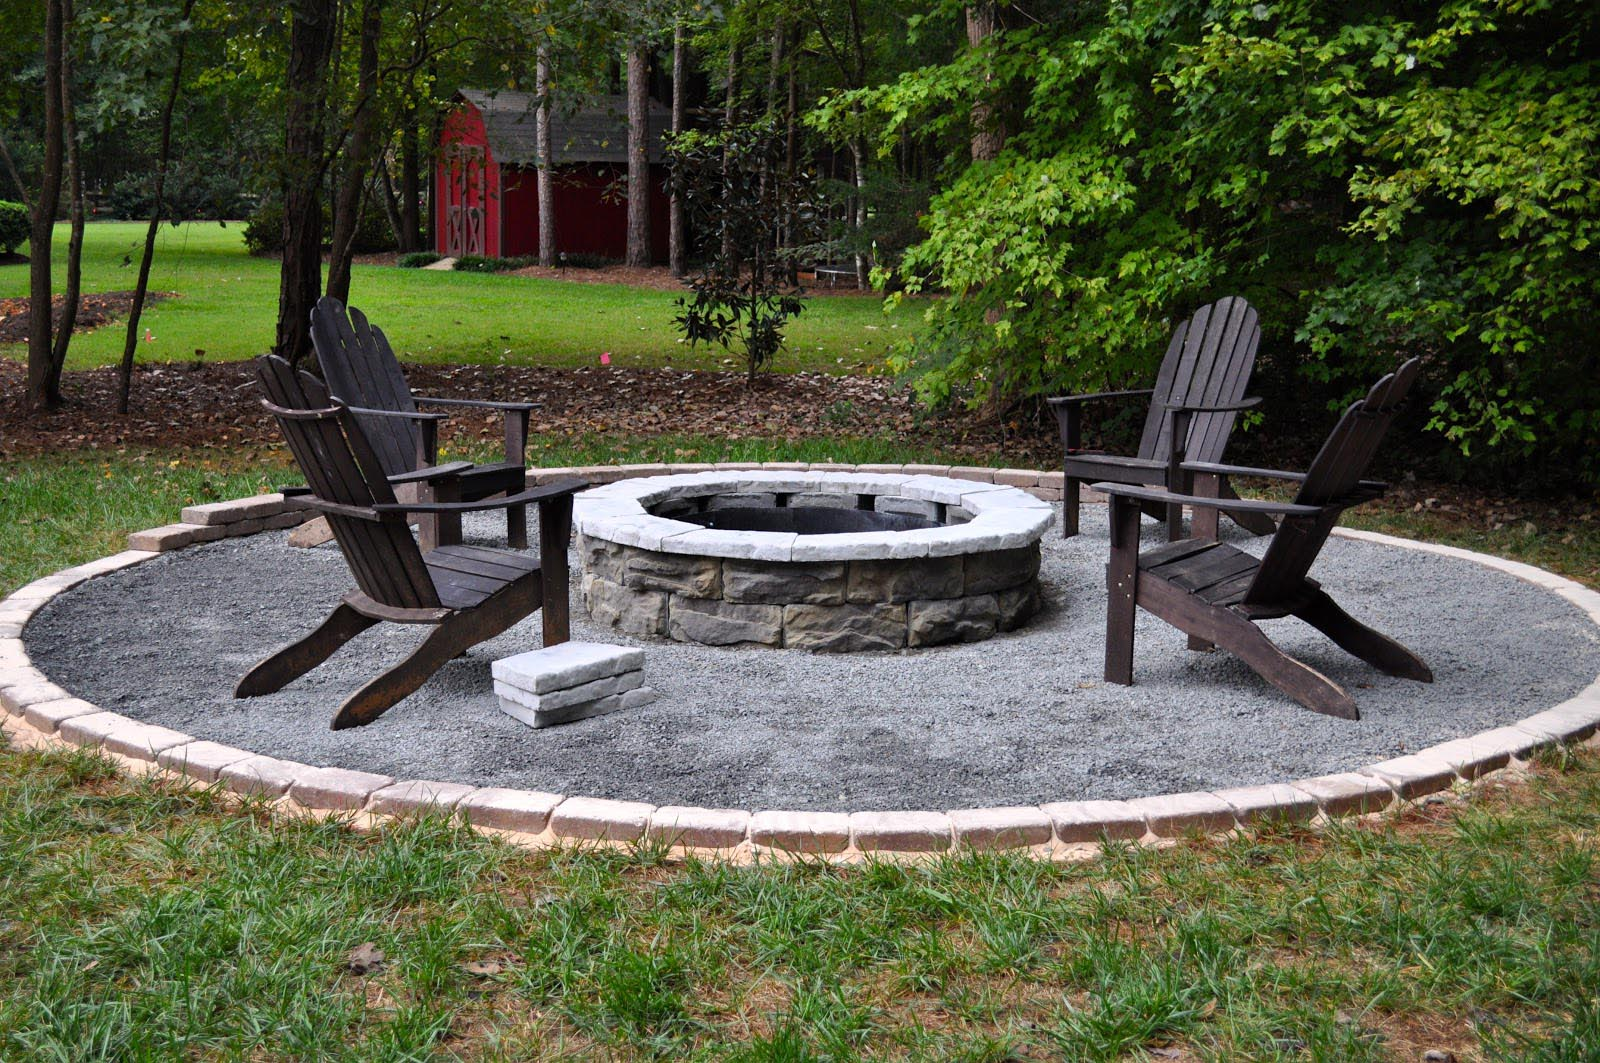 Fire pit plans few easy steps to build a fireplace Granite a frame plans